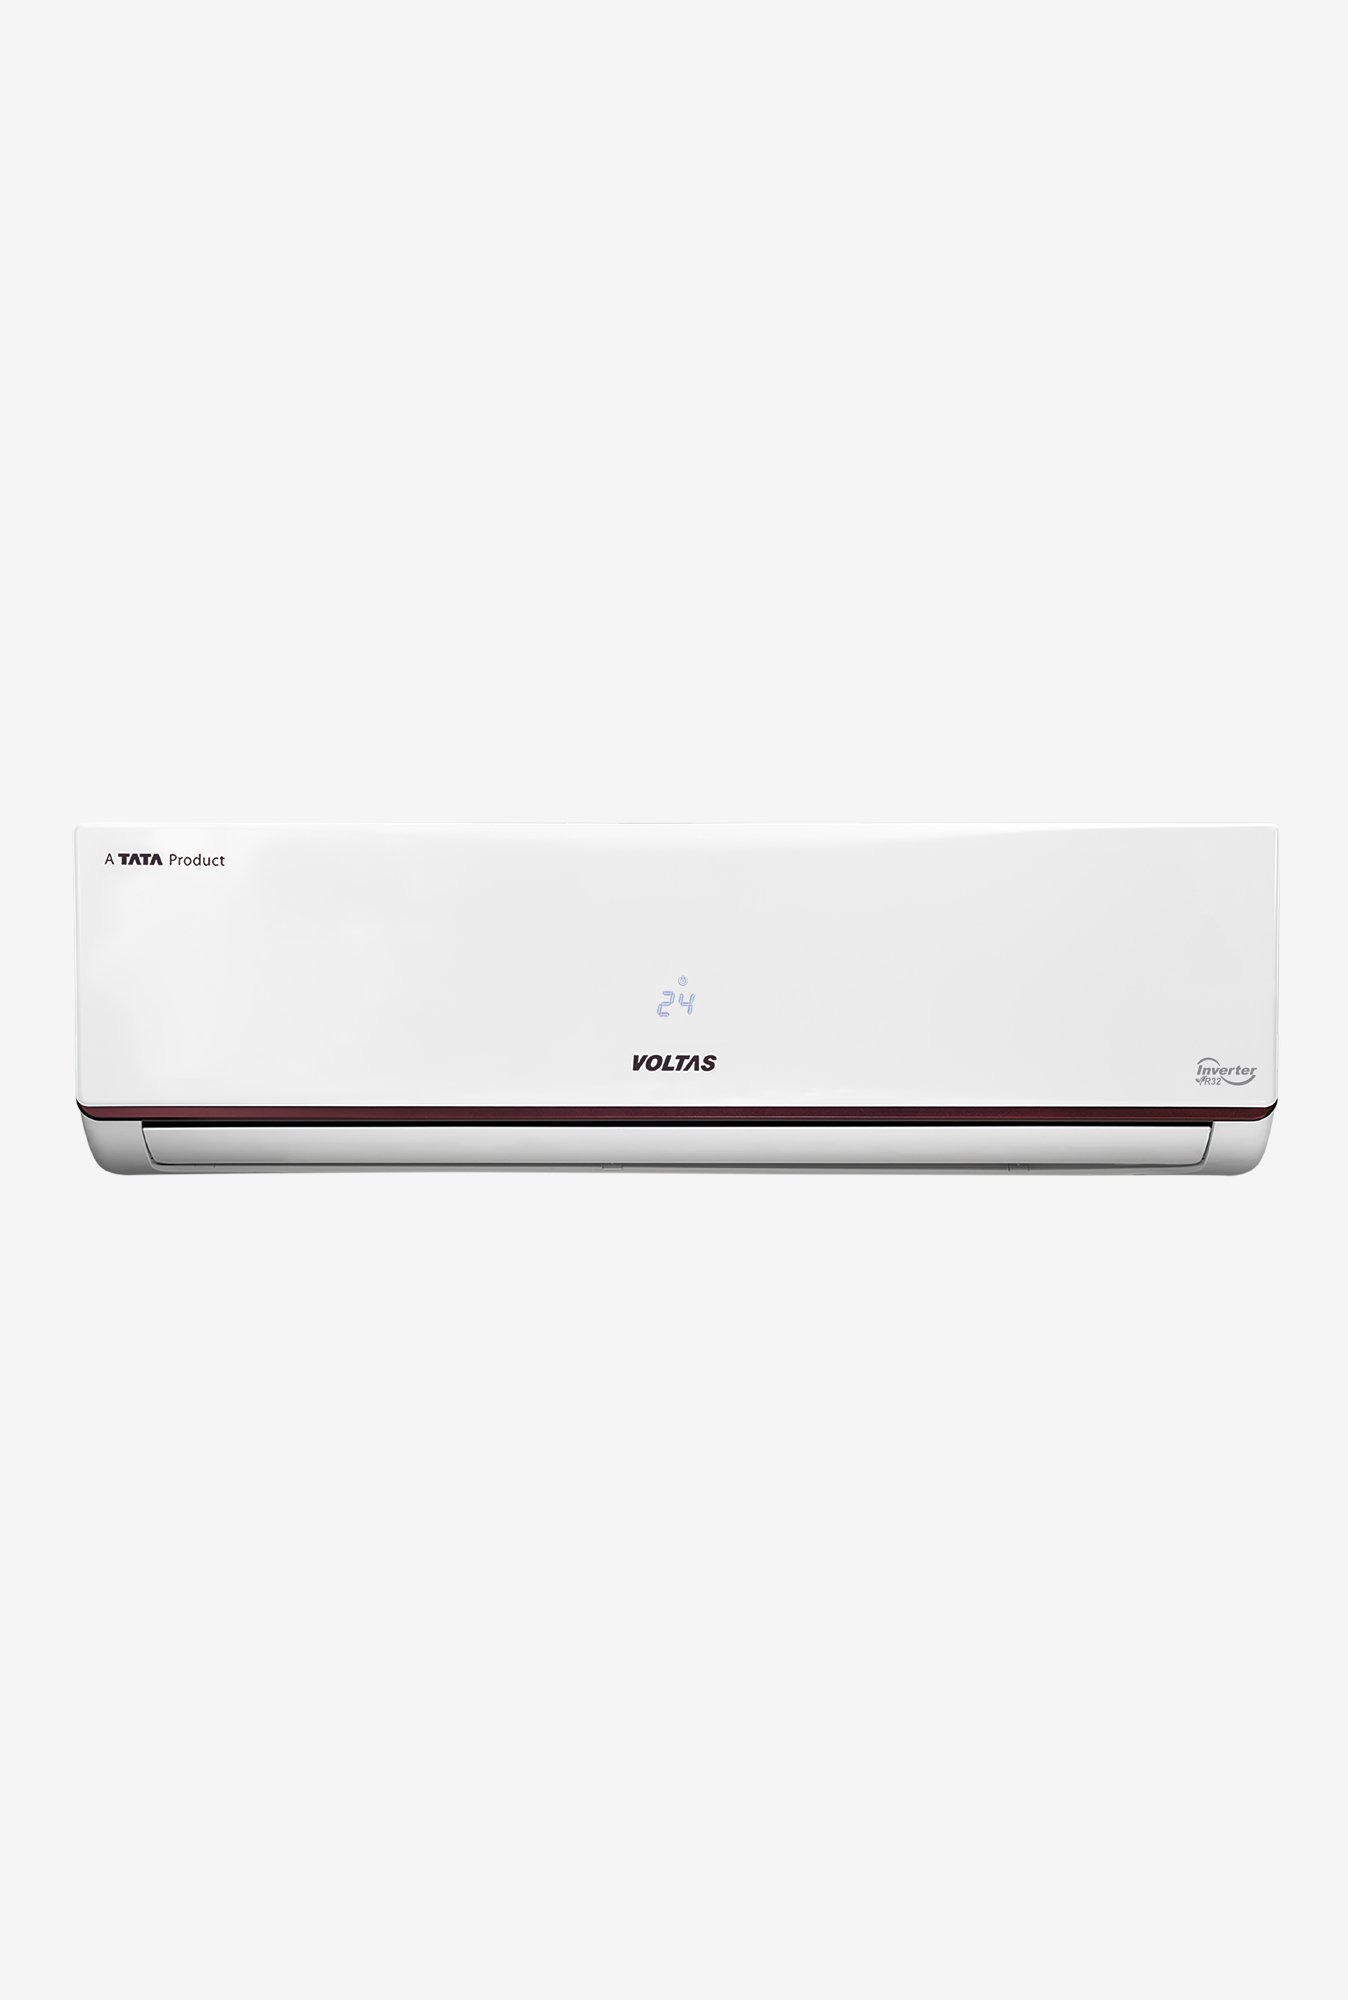 afebe3b2b8f Buy Voltas 1.5 Ton Inverter 5 Star Copper 185V JZJ Split AC Online .